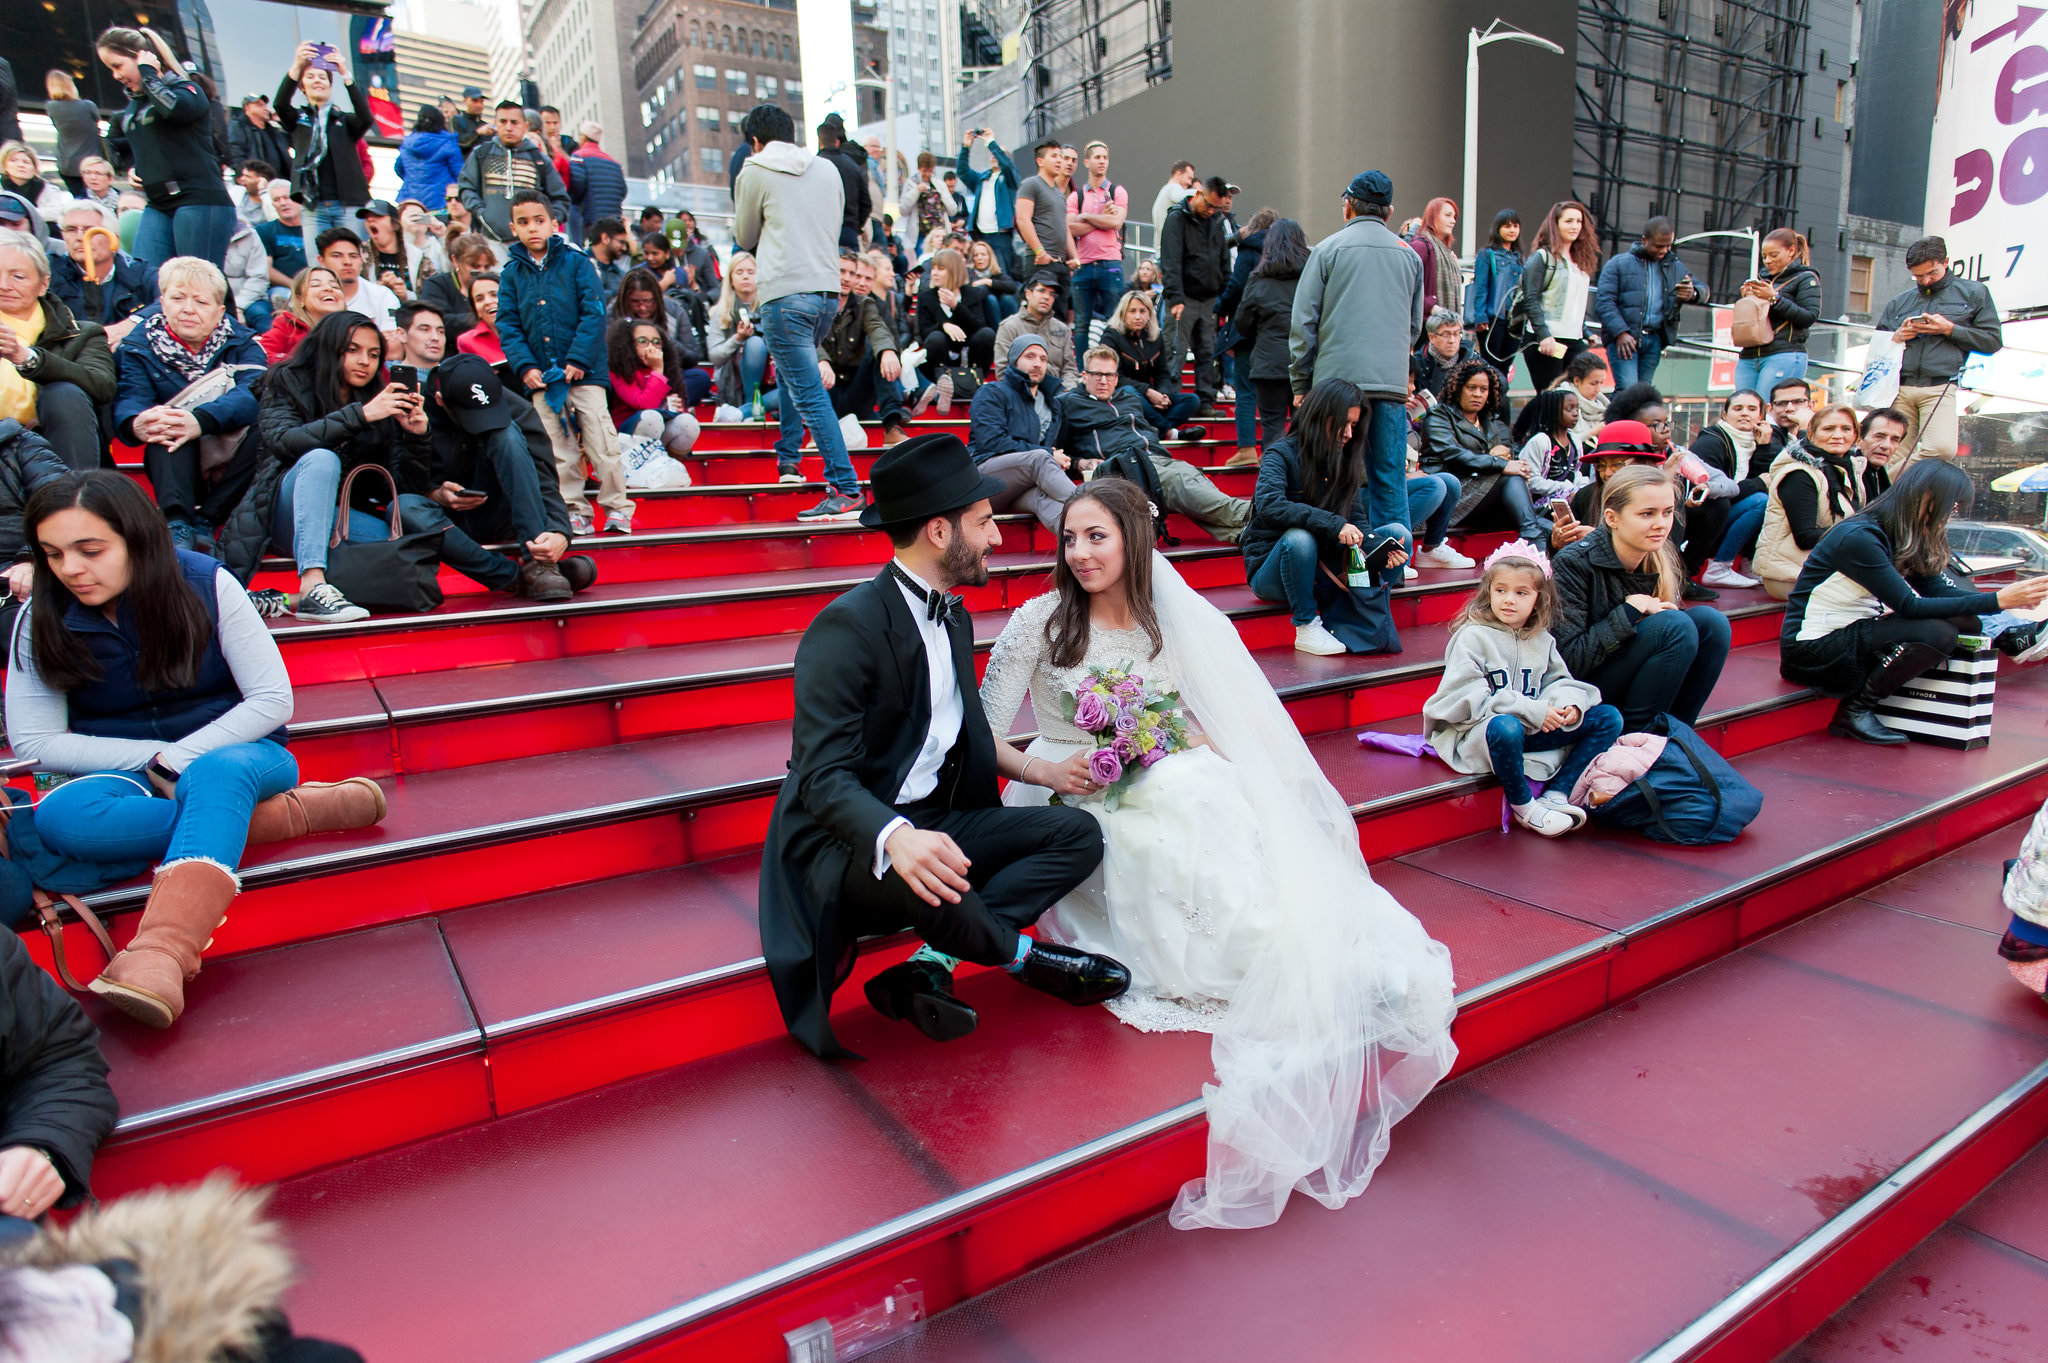 Historic Chabad Orthodox Jewish Wedding in Times Square Manhattan New York NYC Photo by Chaim Schvarcz, bride, groom